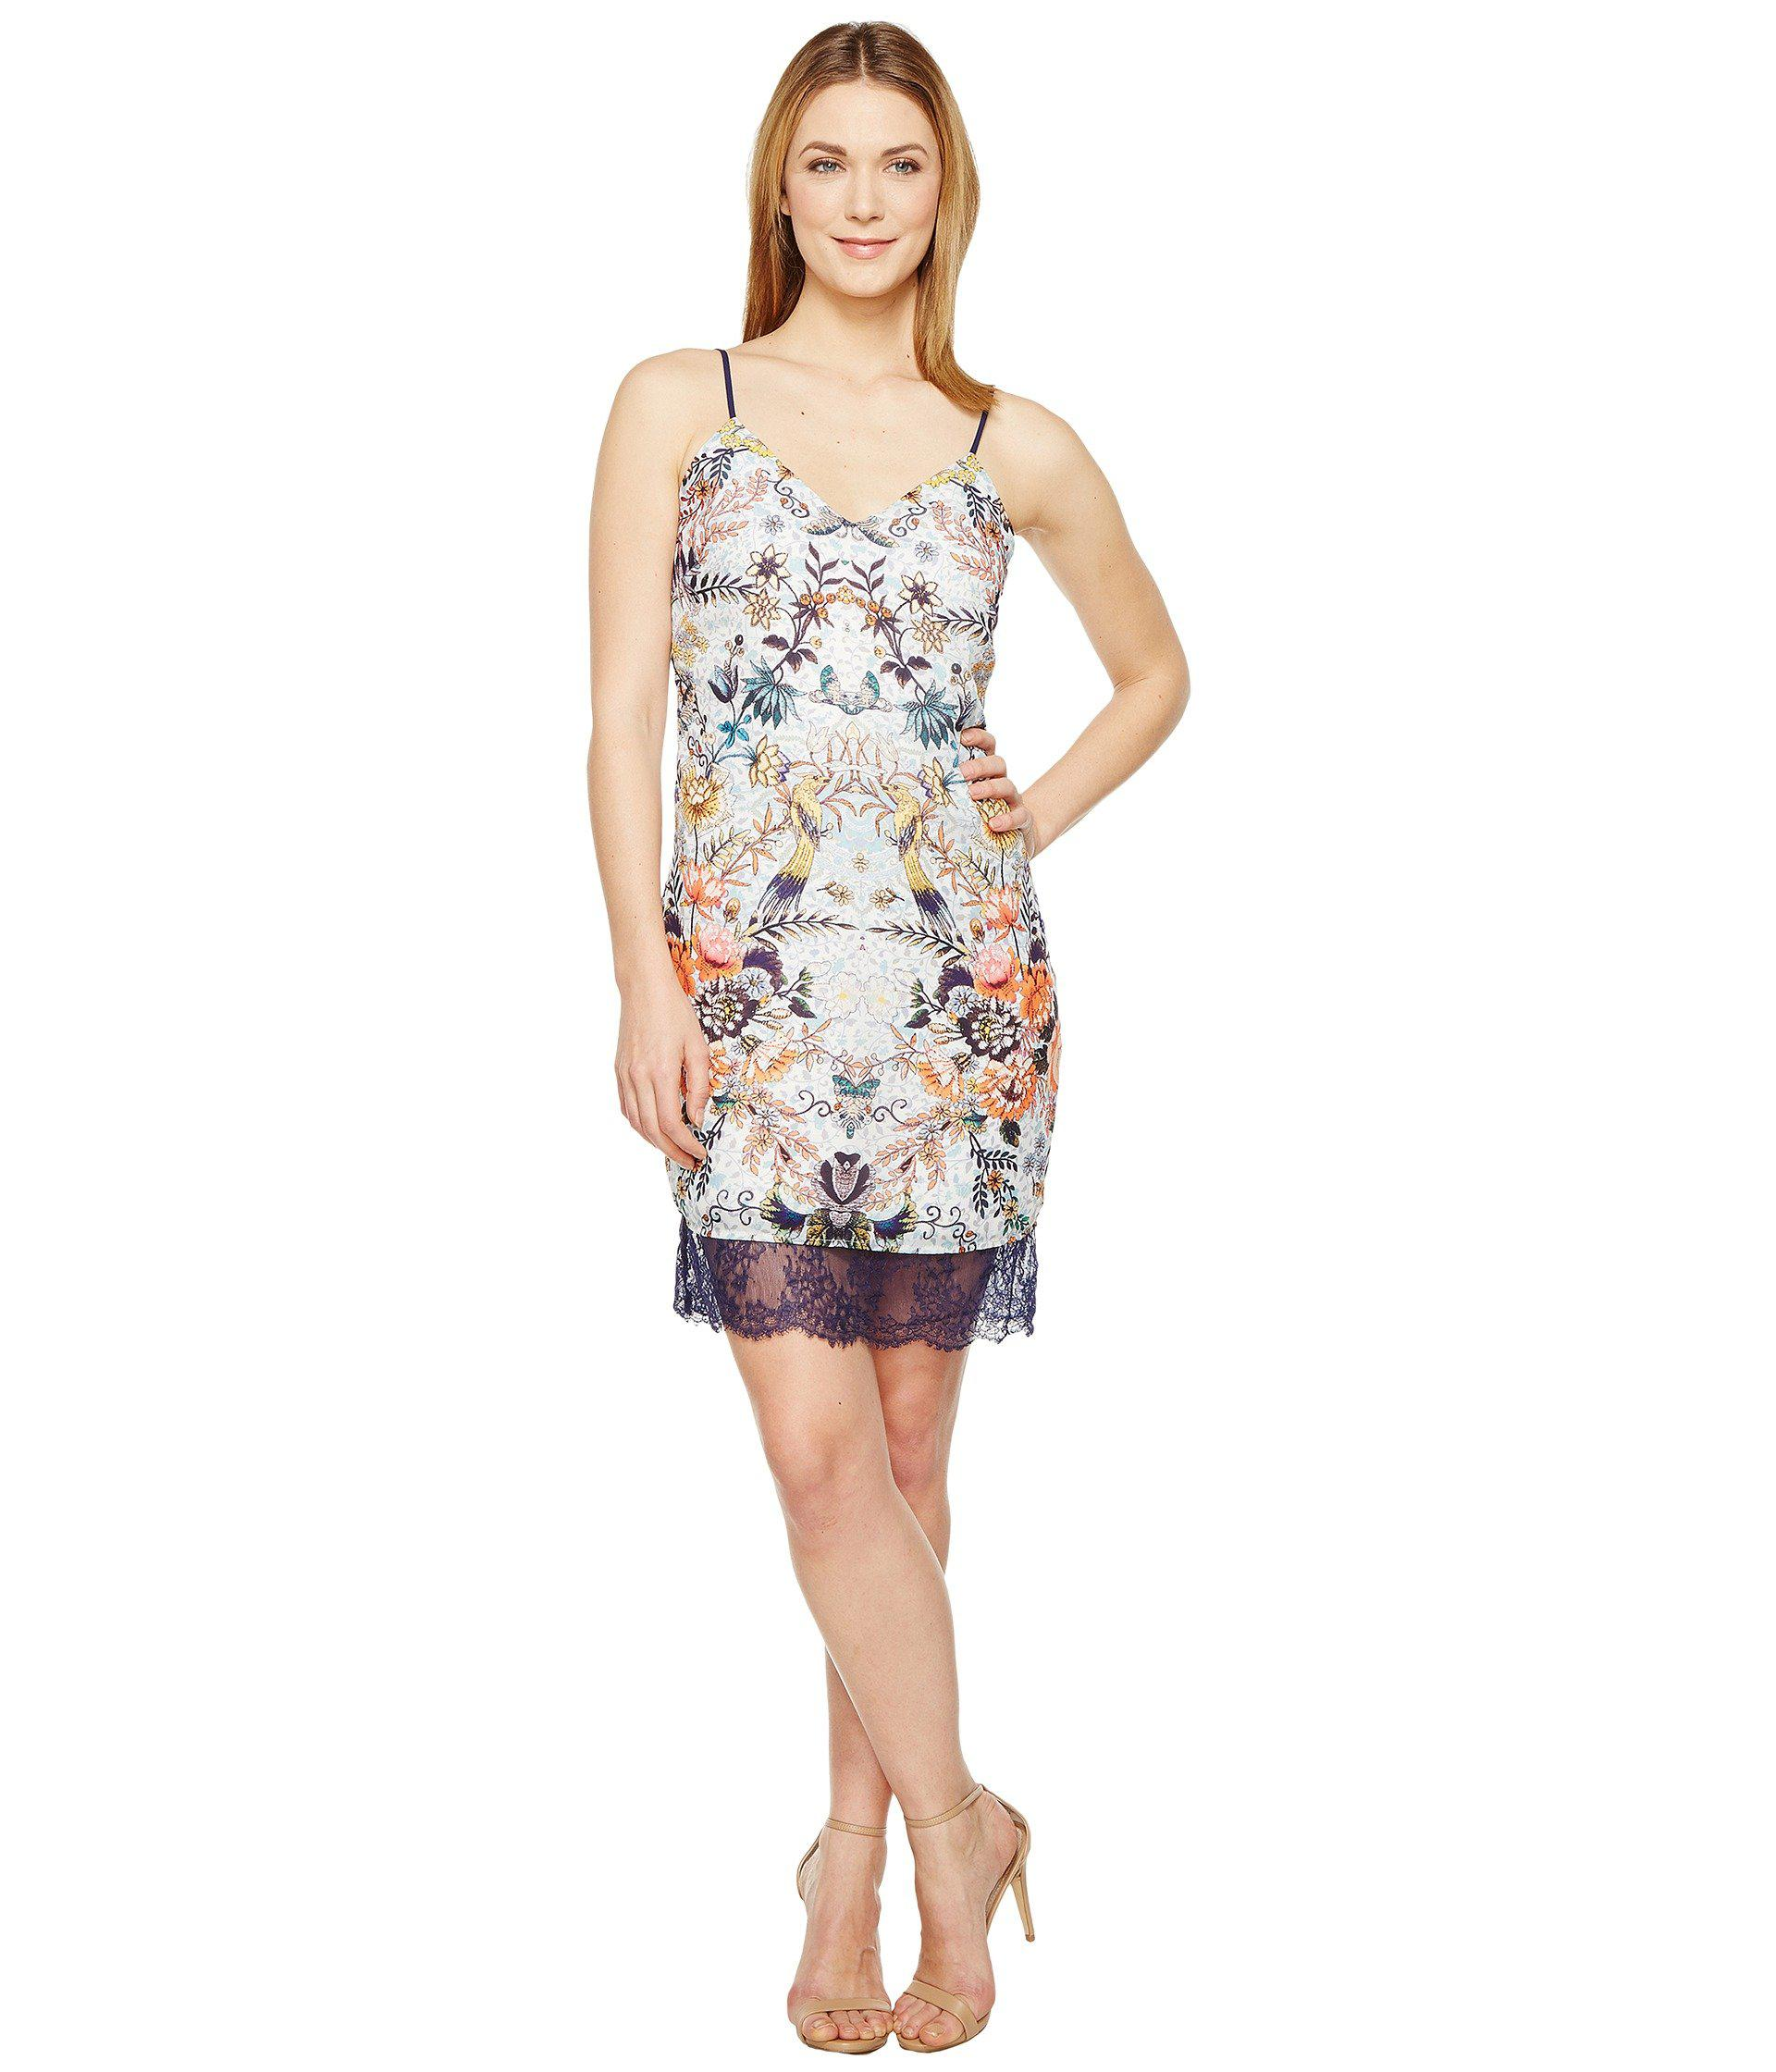 b99576a8f9 Lyst - Adelyn Rae Lydia Woven Printed Slip Dress in White - Save 65%